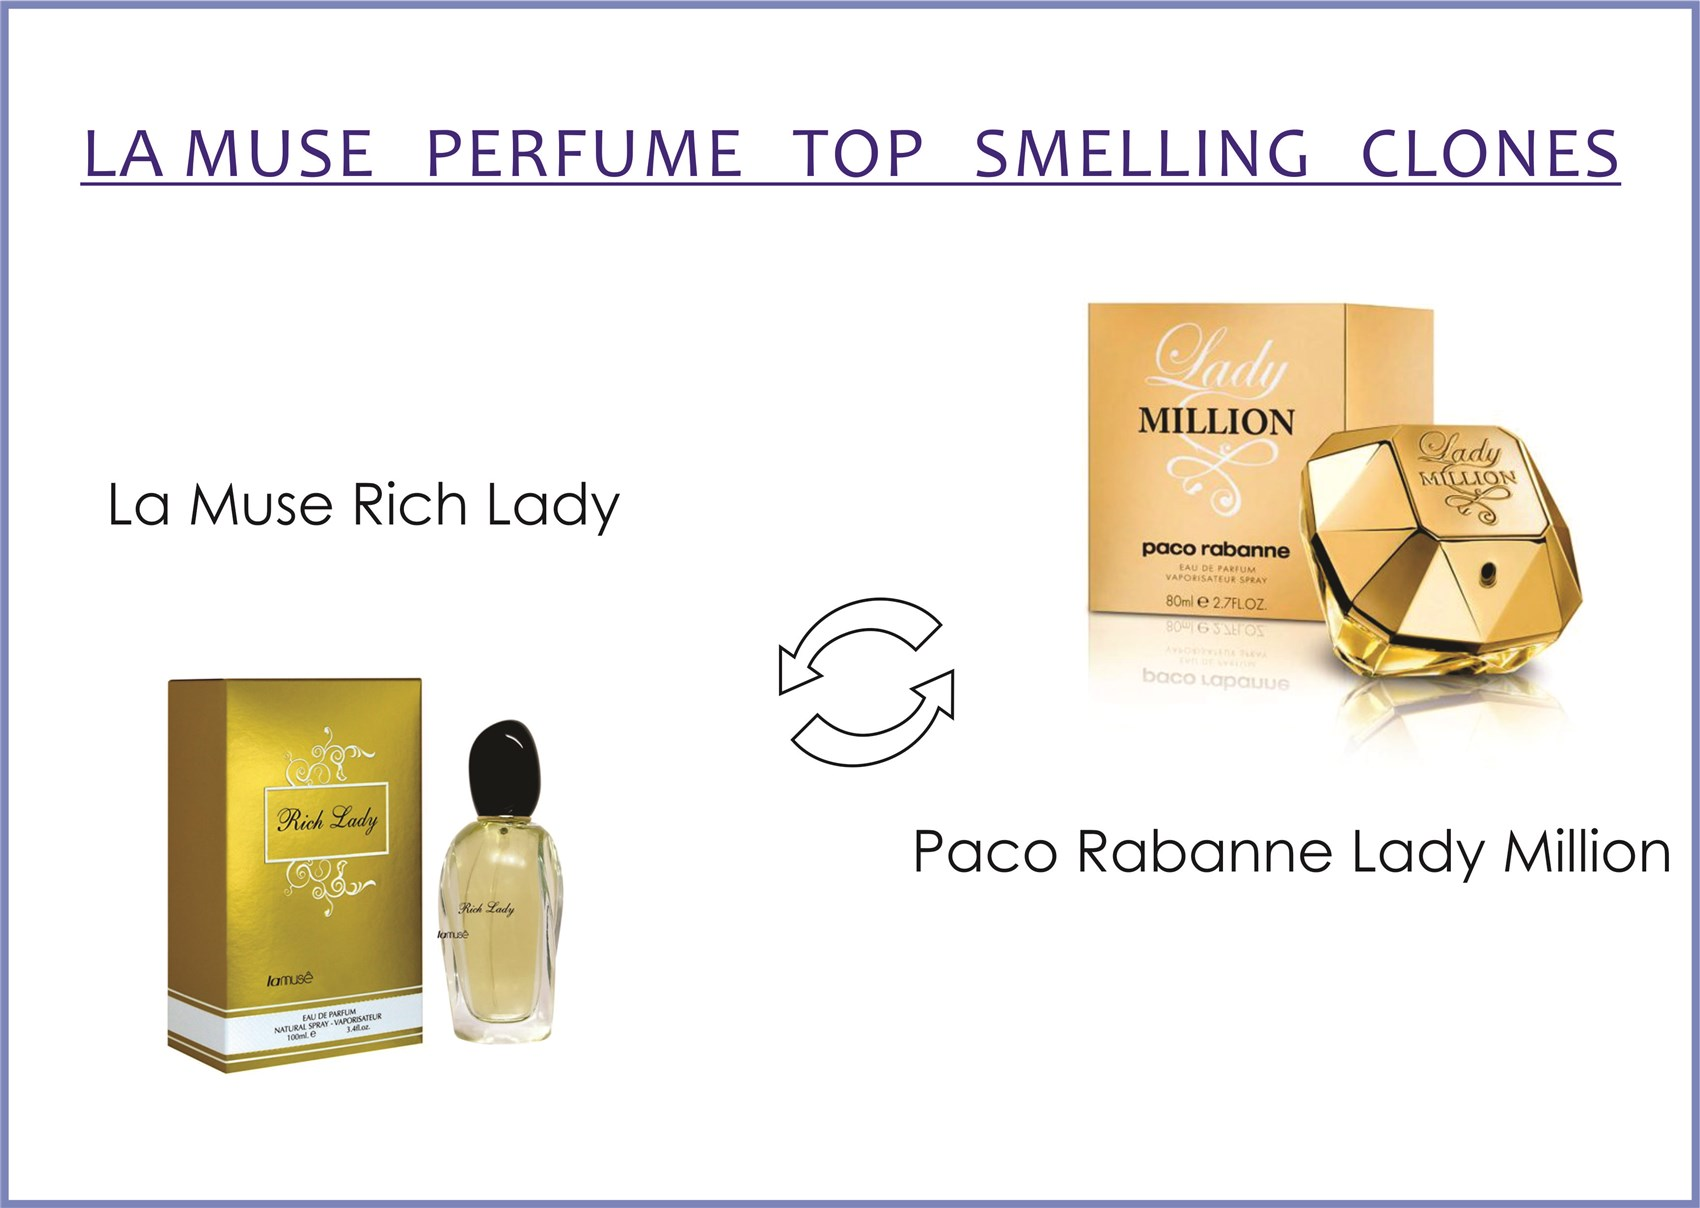 la-muse-rich-lady-for-women-100-ml-edp-by-lattafa-perfumes-paco-rabanne-lady-million-perfume-for-women-80-ml-edt